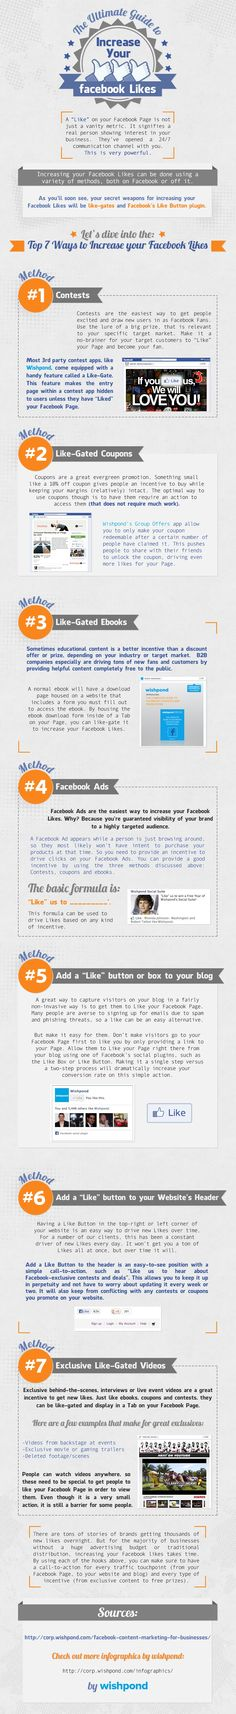 The ultimate guide to increase your FaceBook Likes #infographic